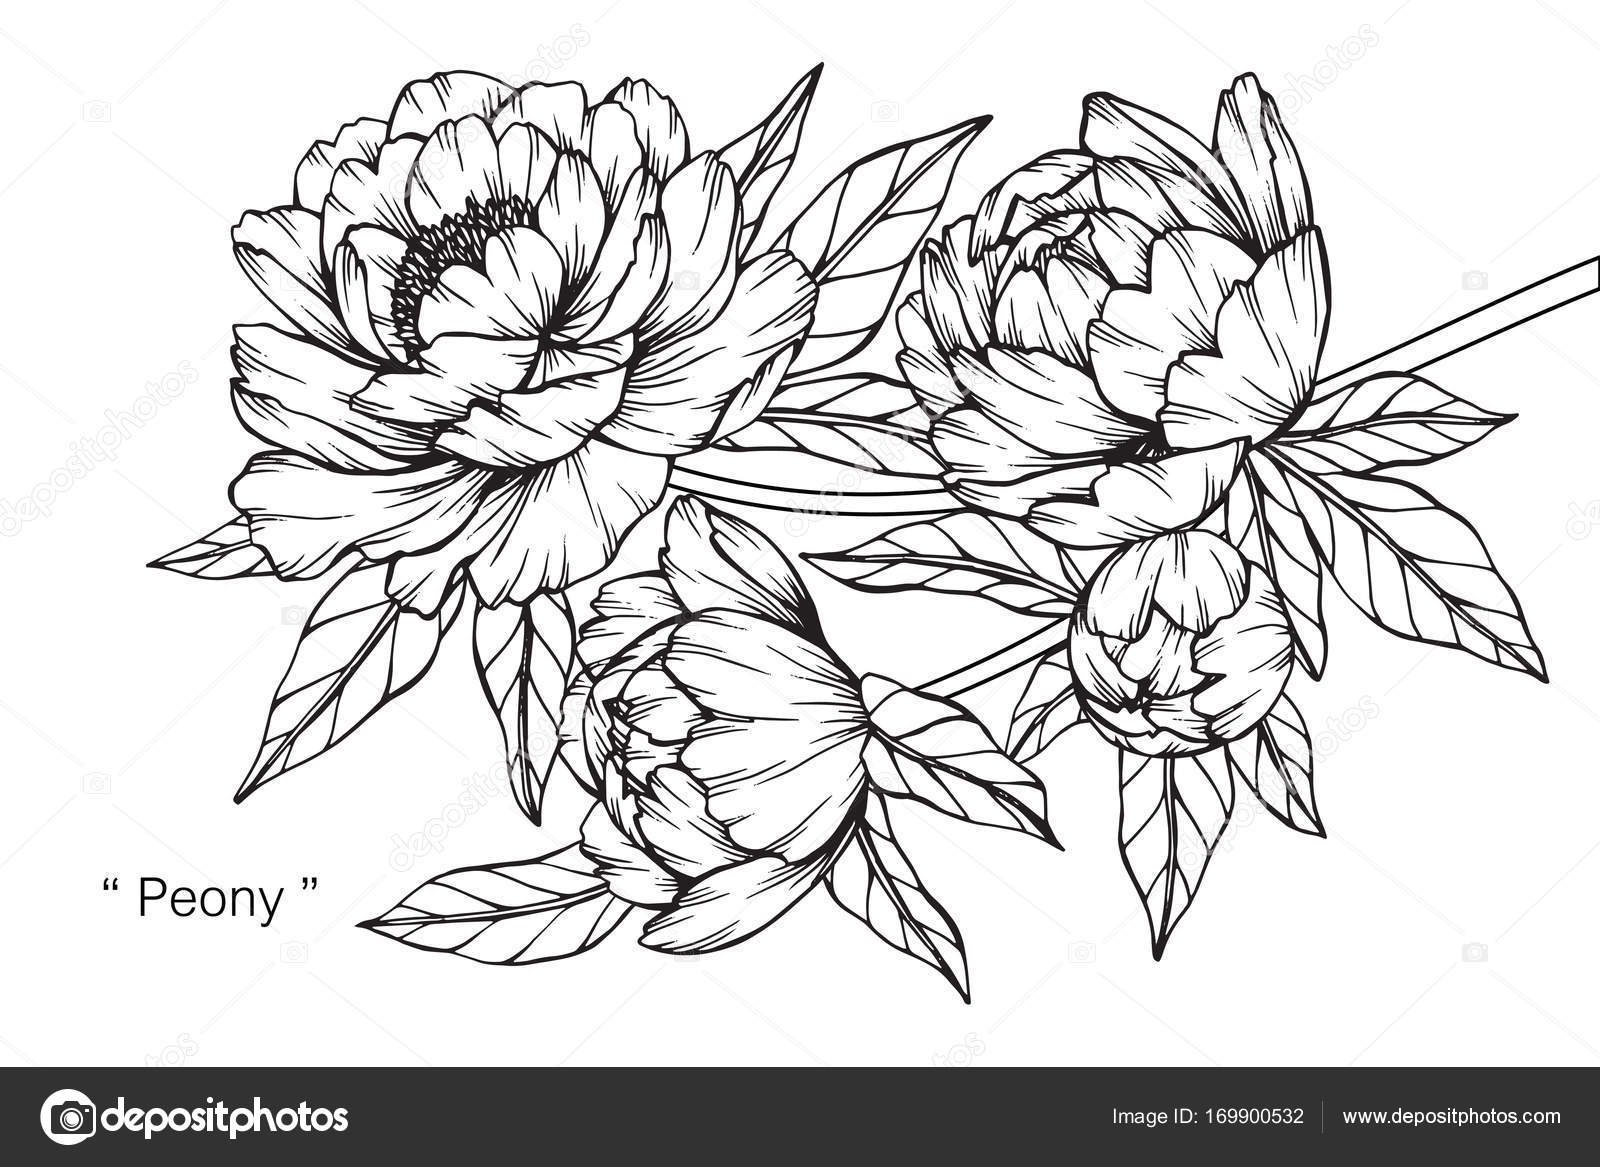 Peony Flower Line Drawing : Peony flower drawing sketch black white line art — stock